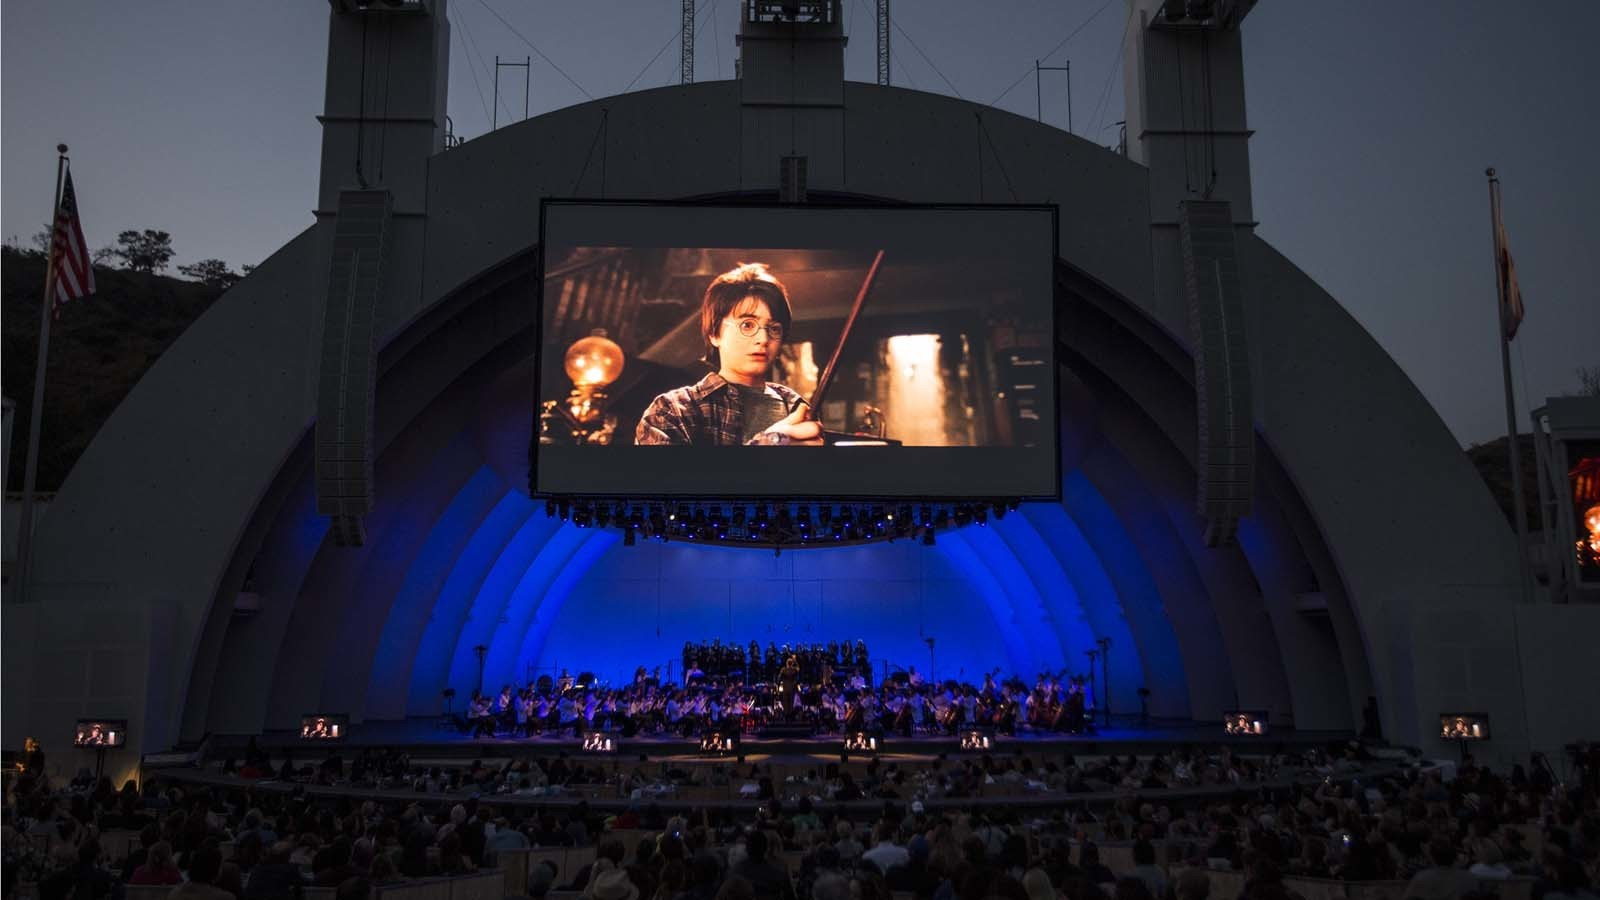 """The L.A. Philharmonic gives a live performance of John Williams' music for """"Harry Potter and the Sorcerer's Stone"""" during a screening of the film at the Hollywood Bowl on July 6, 2016. (Robert Gauthier / Los Angeles Times)"""